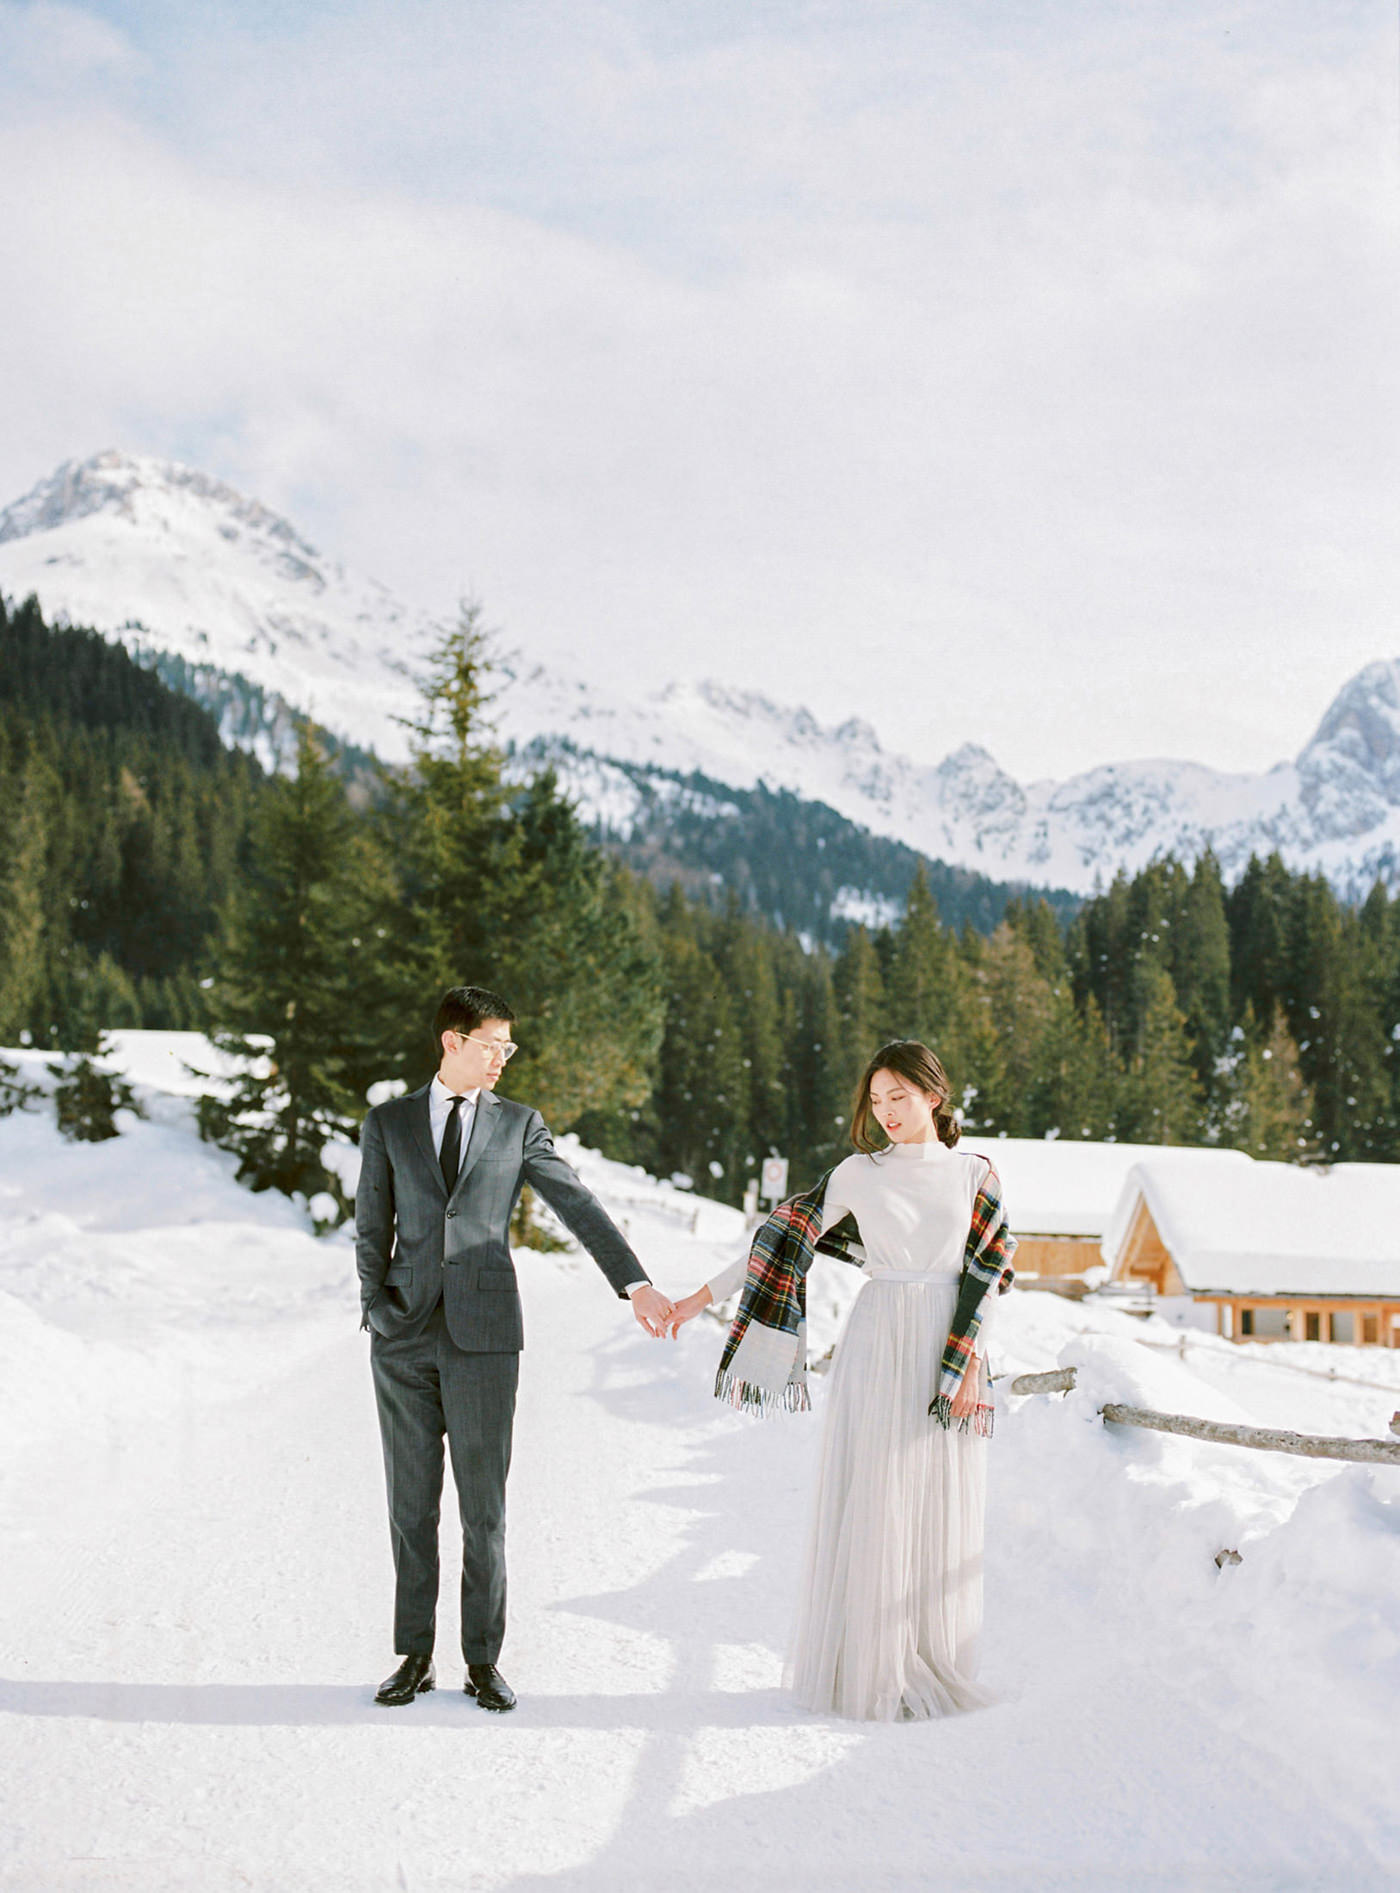 eloping in the alpine mountains   Dolomites, italy